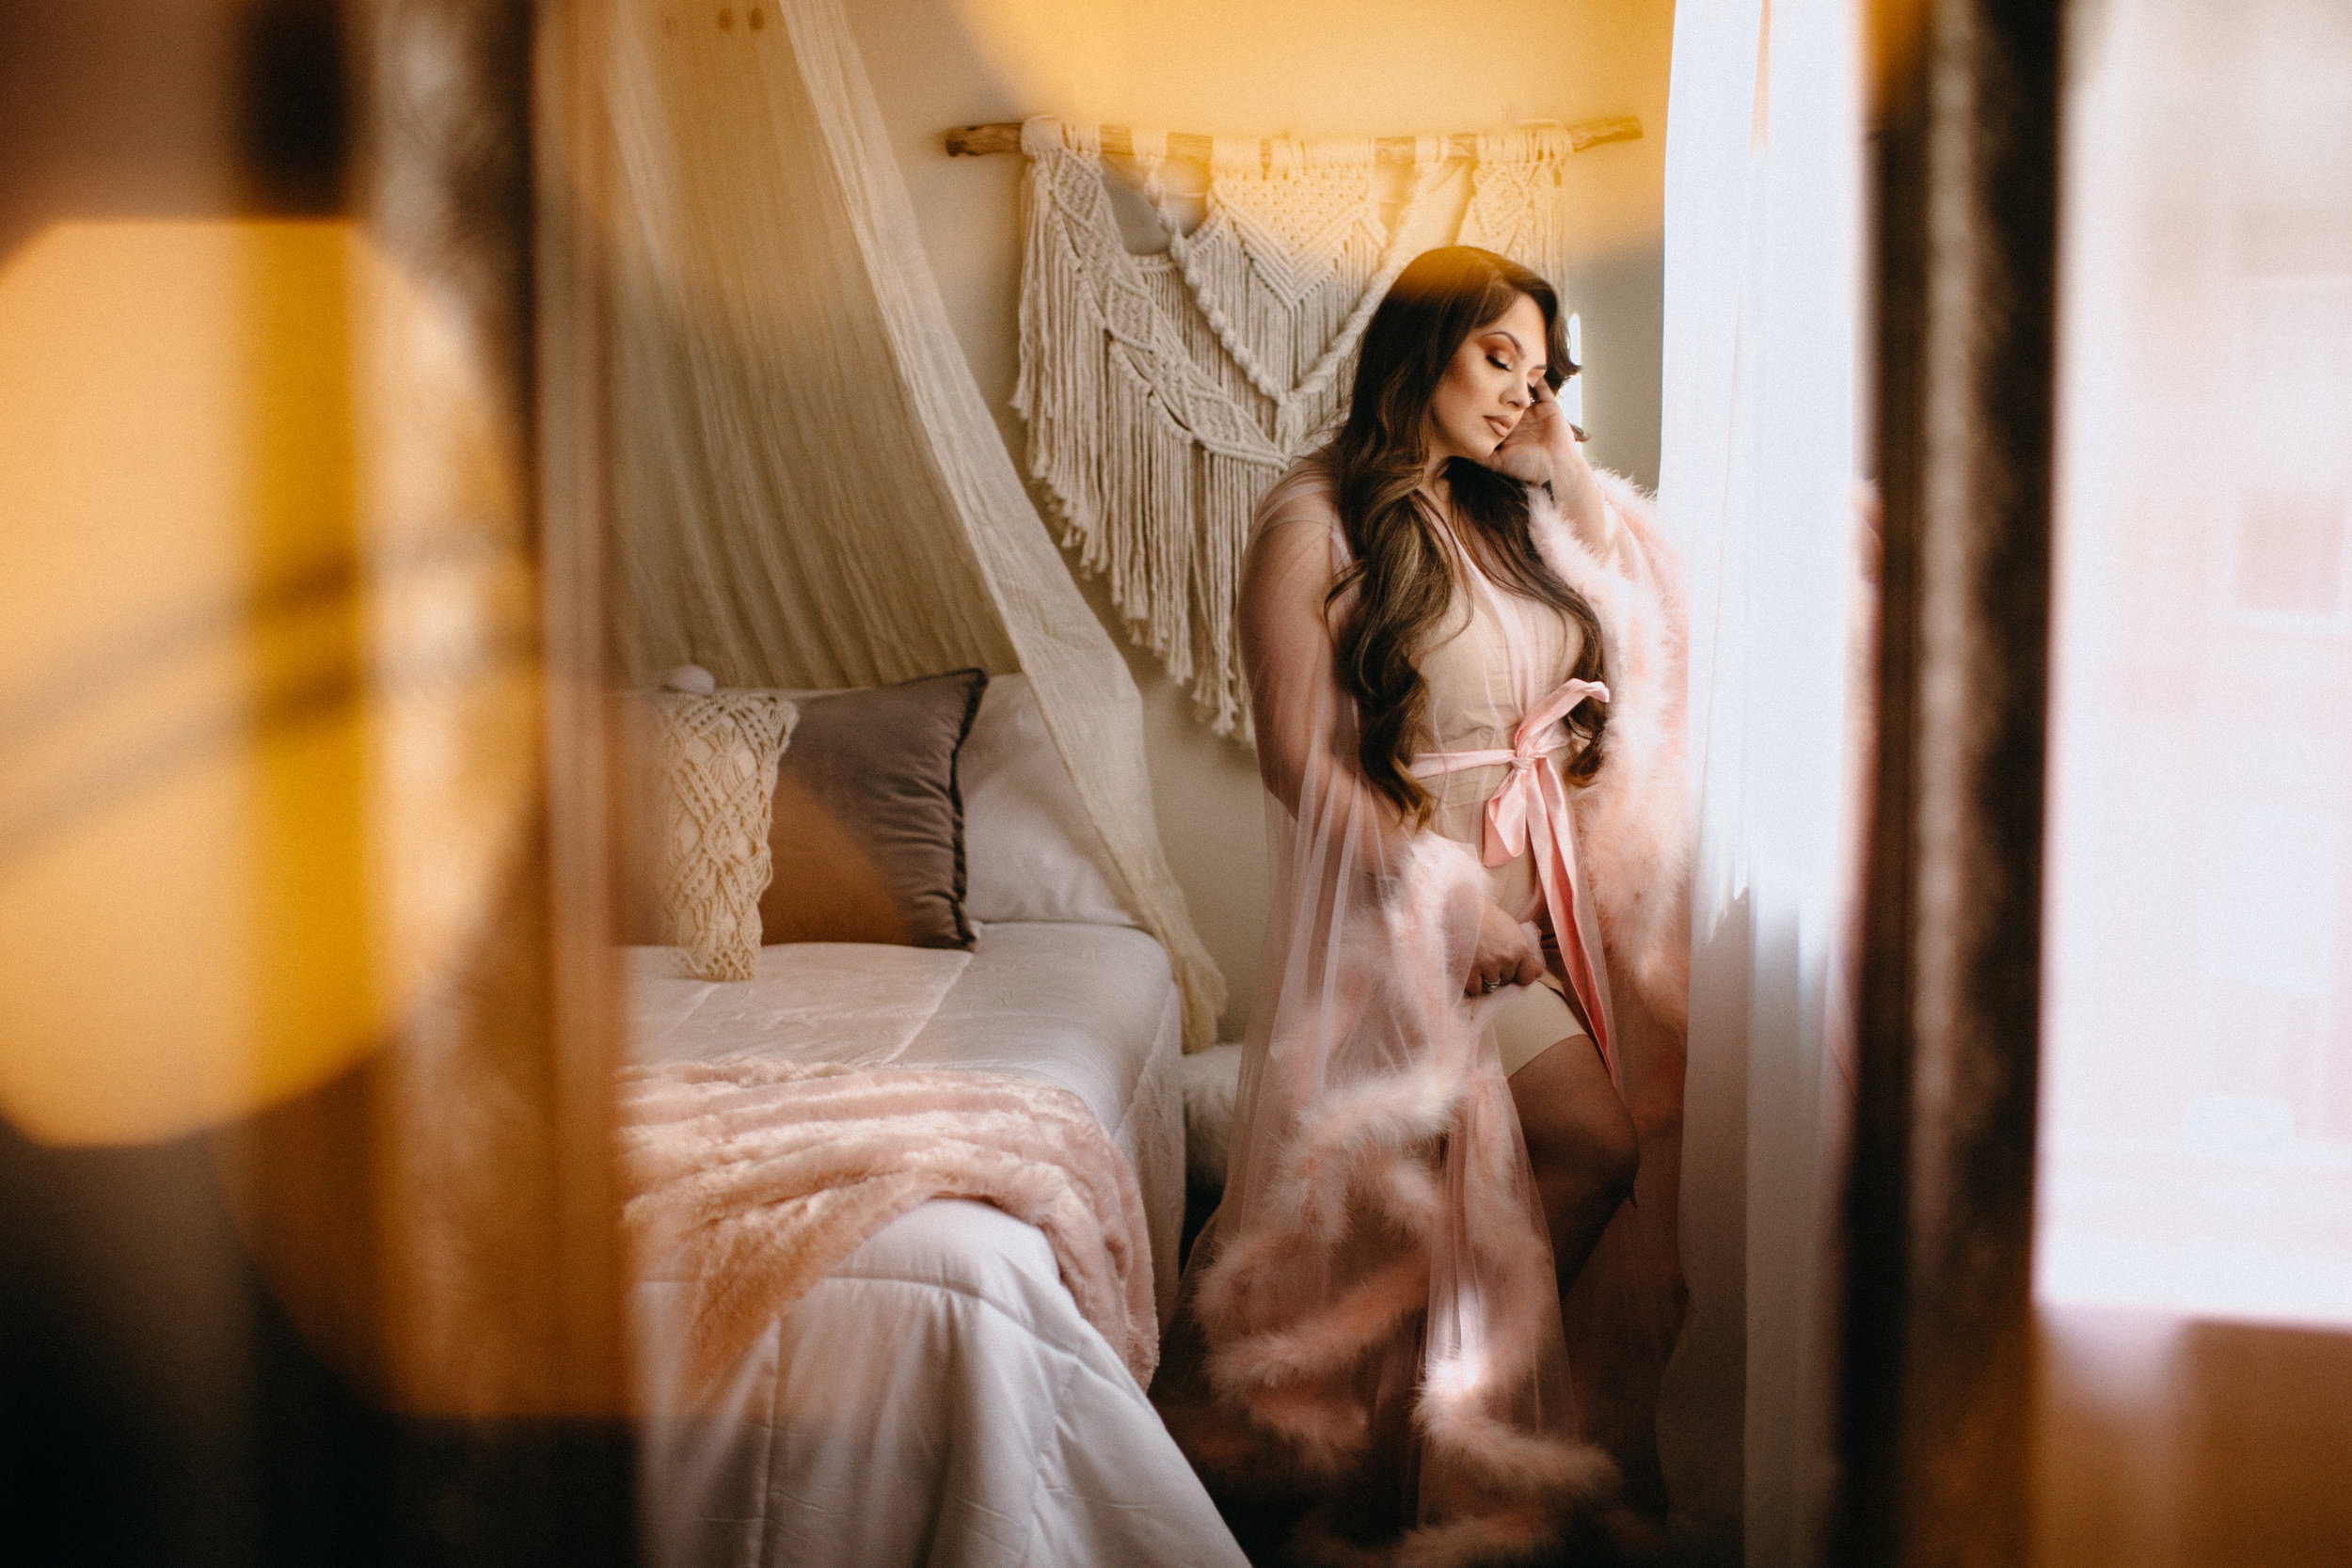 Liz Osban Photography Boudoir Sweetheart Sessions Session Tavae Hurtado pinup Cheyenne Wyoming Ft Collins Colorado Self Love Flower Crown Wedding Elope Eloping Elopement Engaged Gift22.jpg